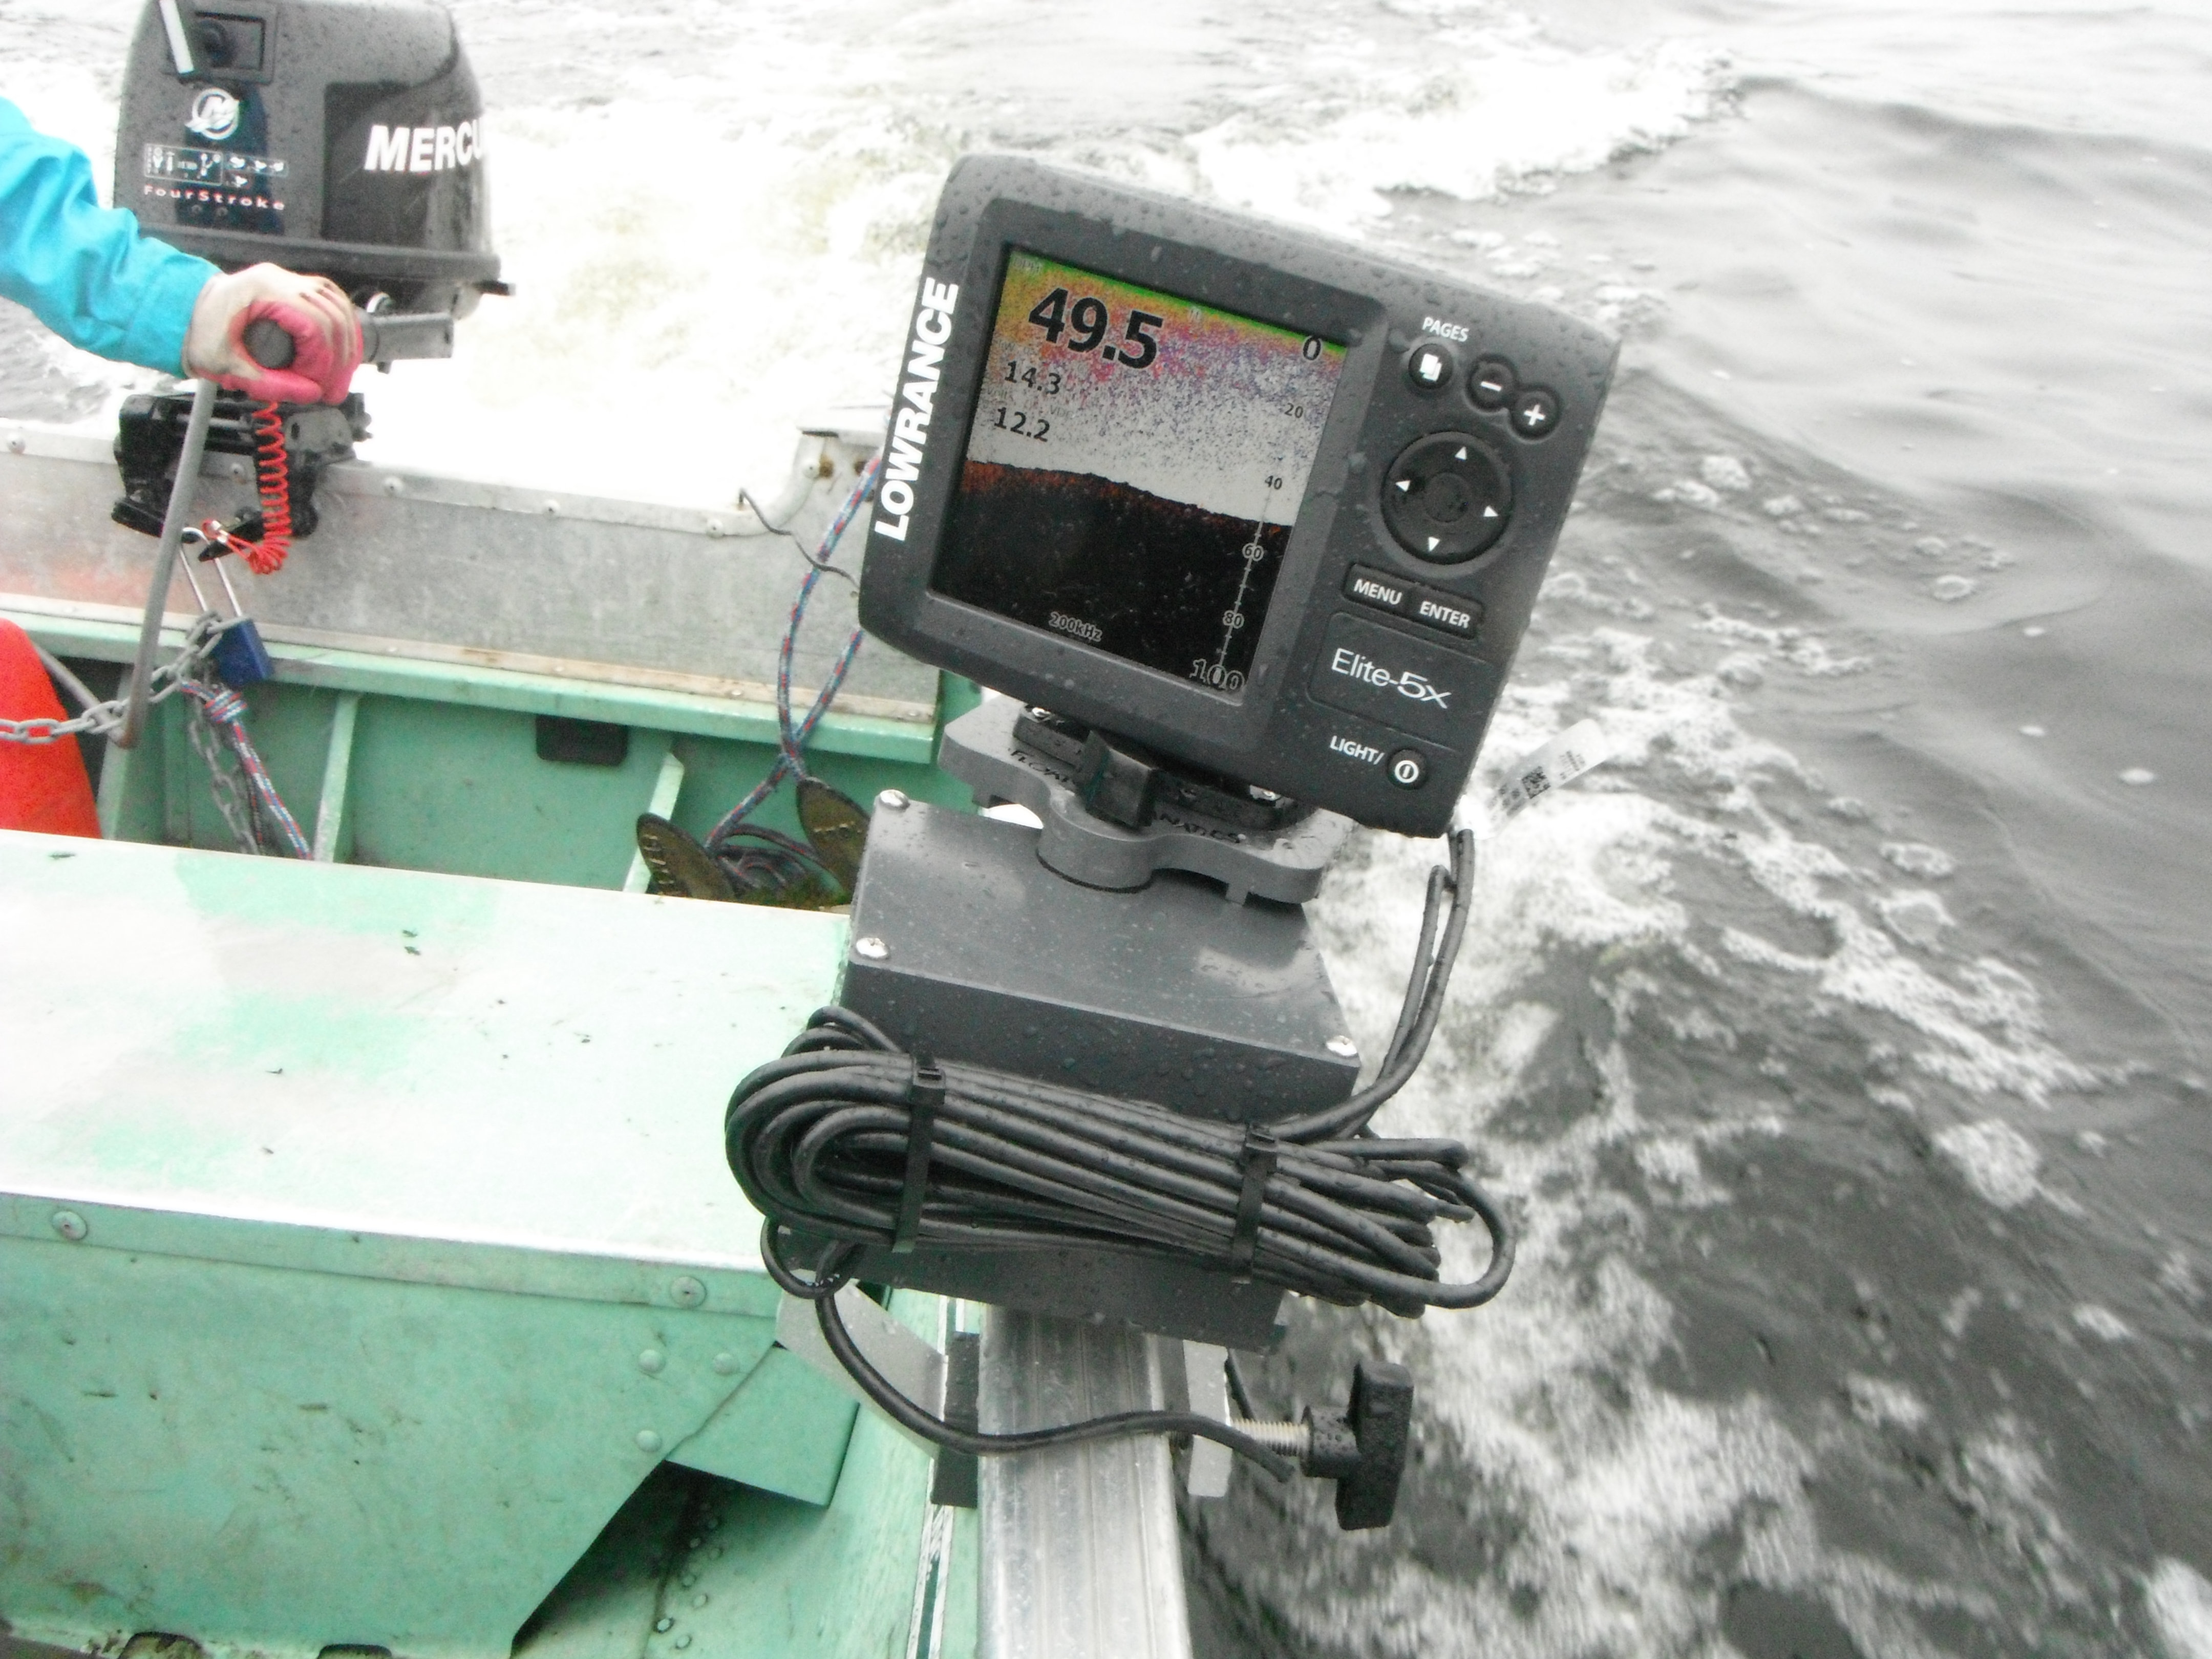 photos of fishfinders installed on boats, float tubes, kayaks, etc., Fish Finder